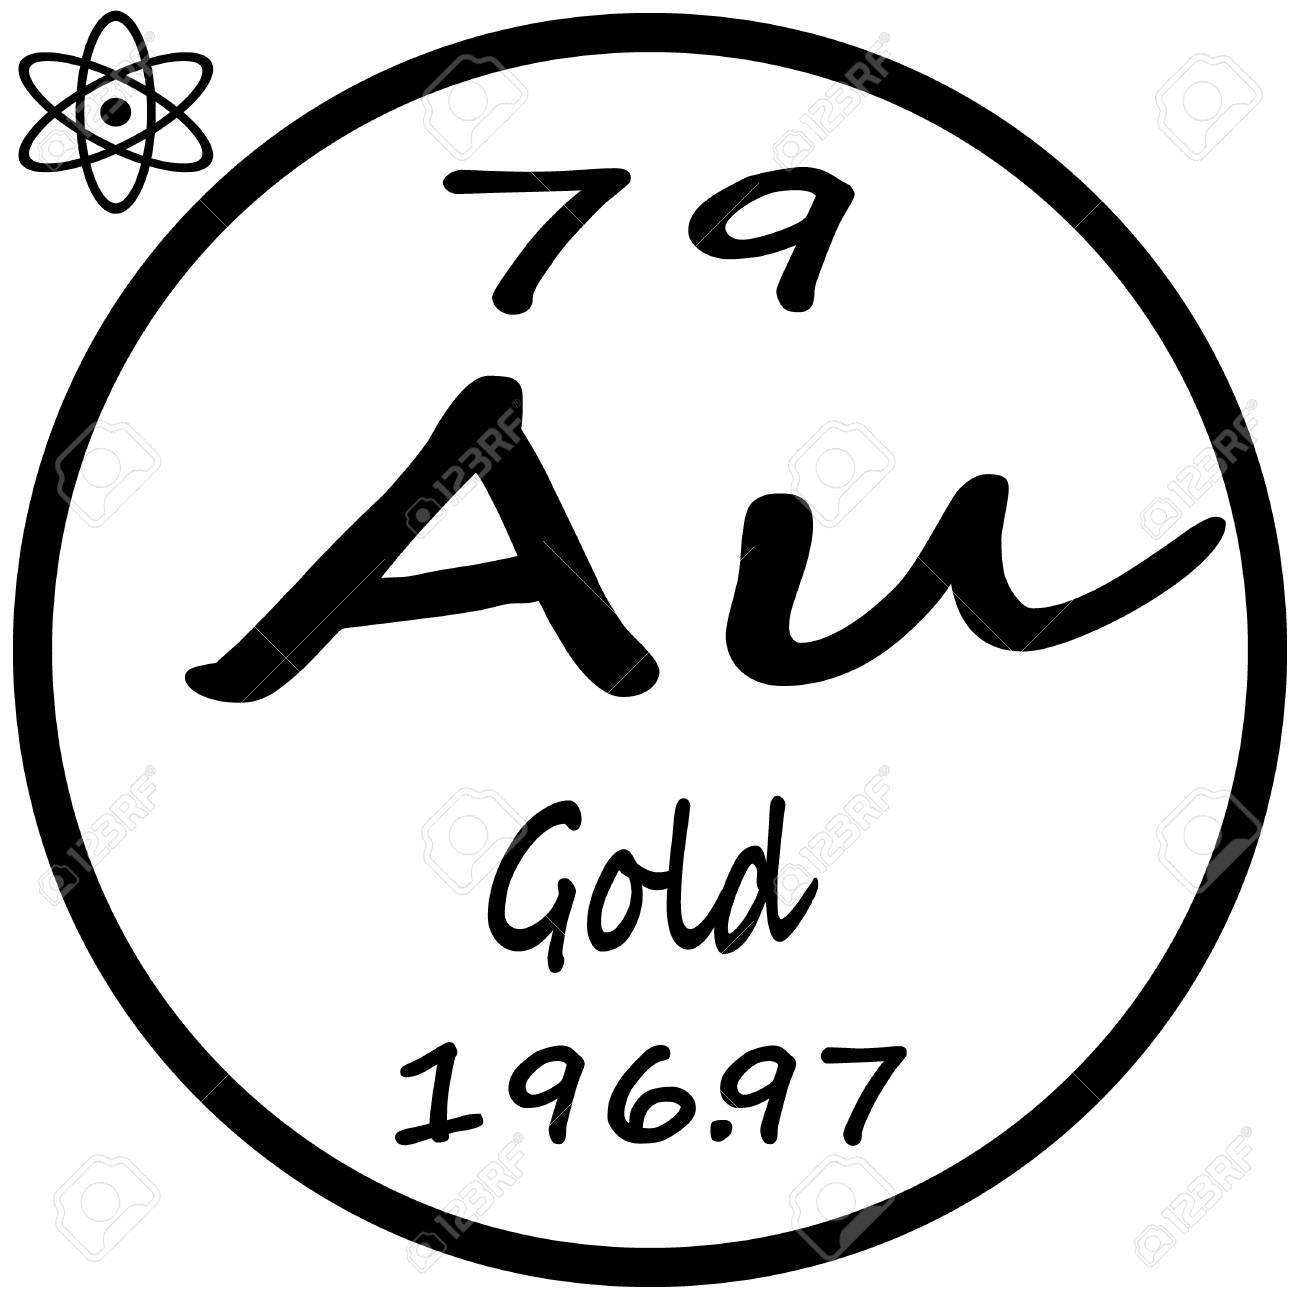 Periodic table of elements gold royalty free cliparts vectors periodic table of elements gold stock vector 53482656 urtaz Image collections